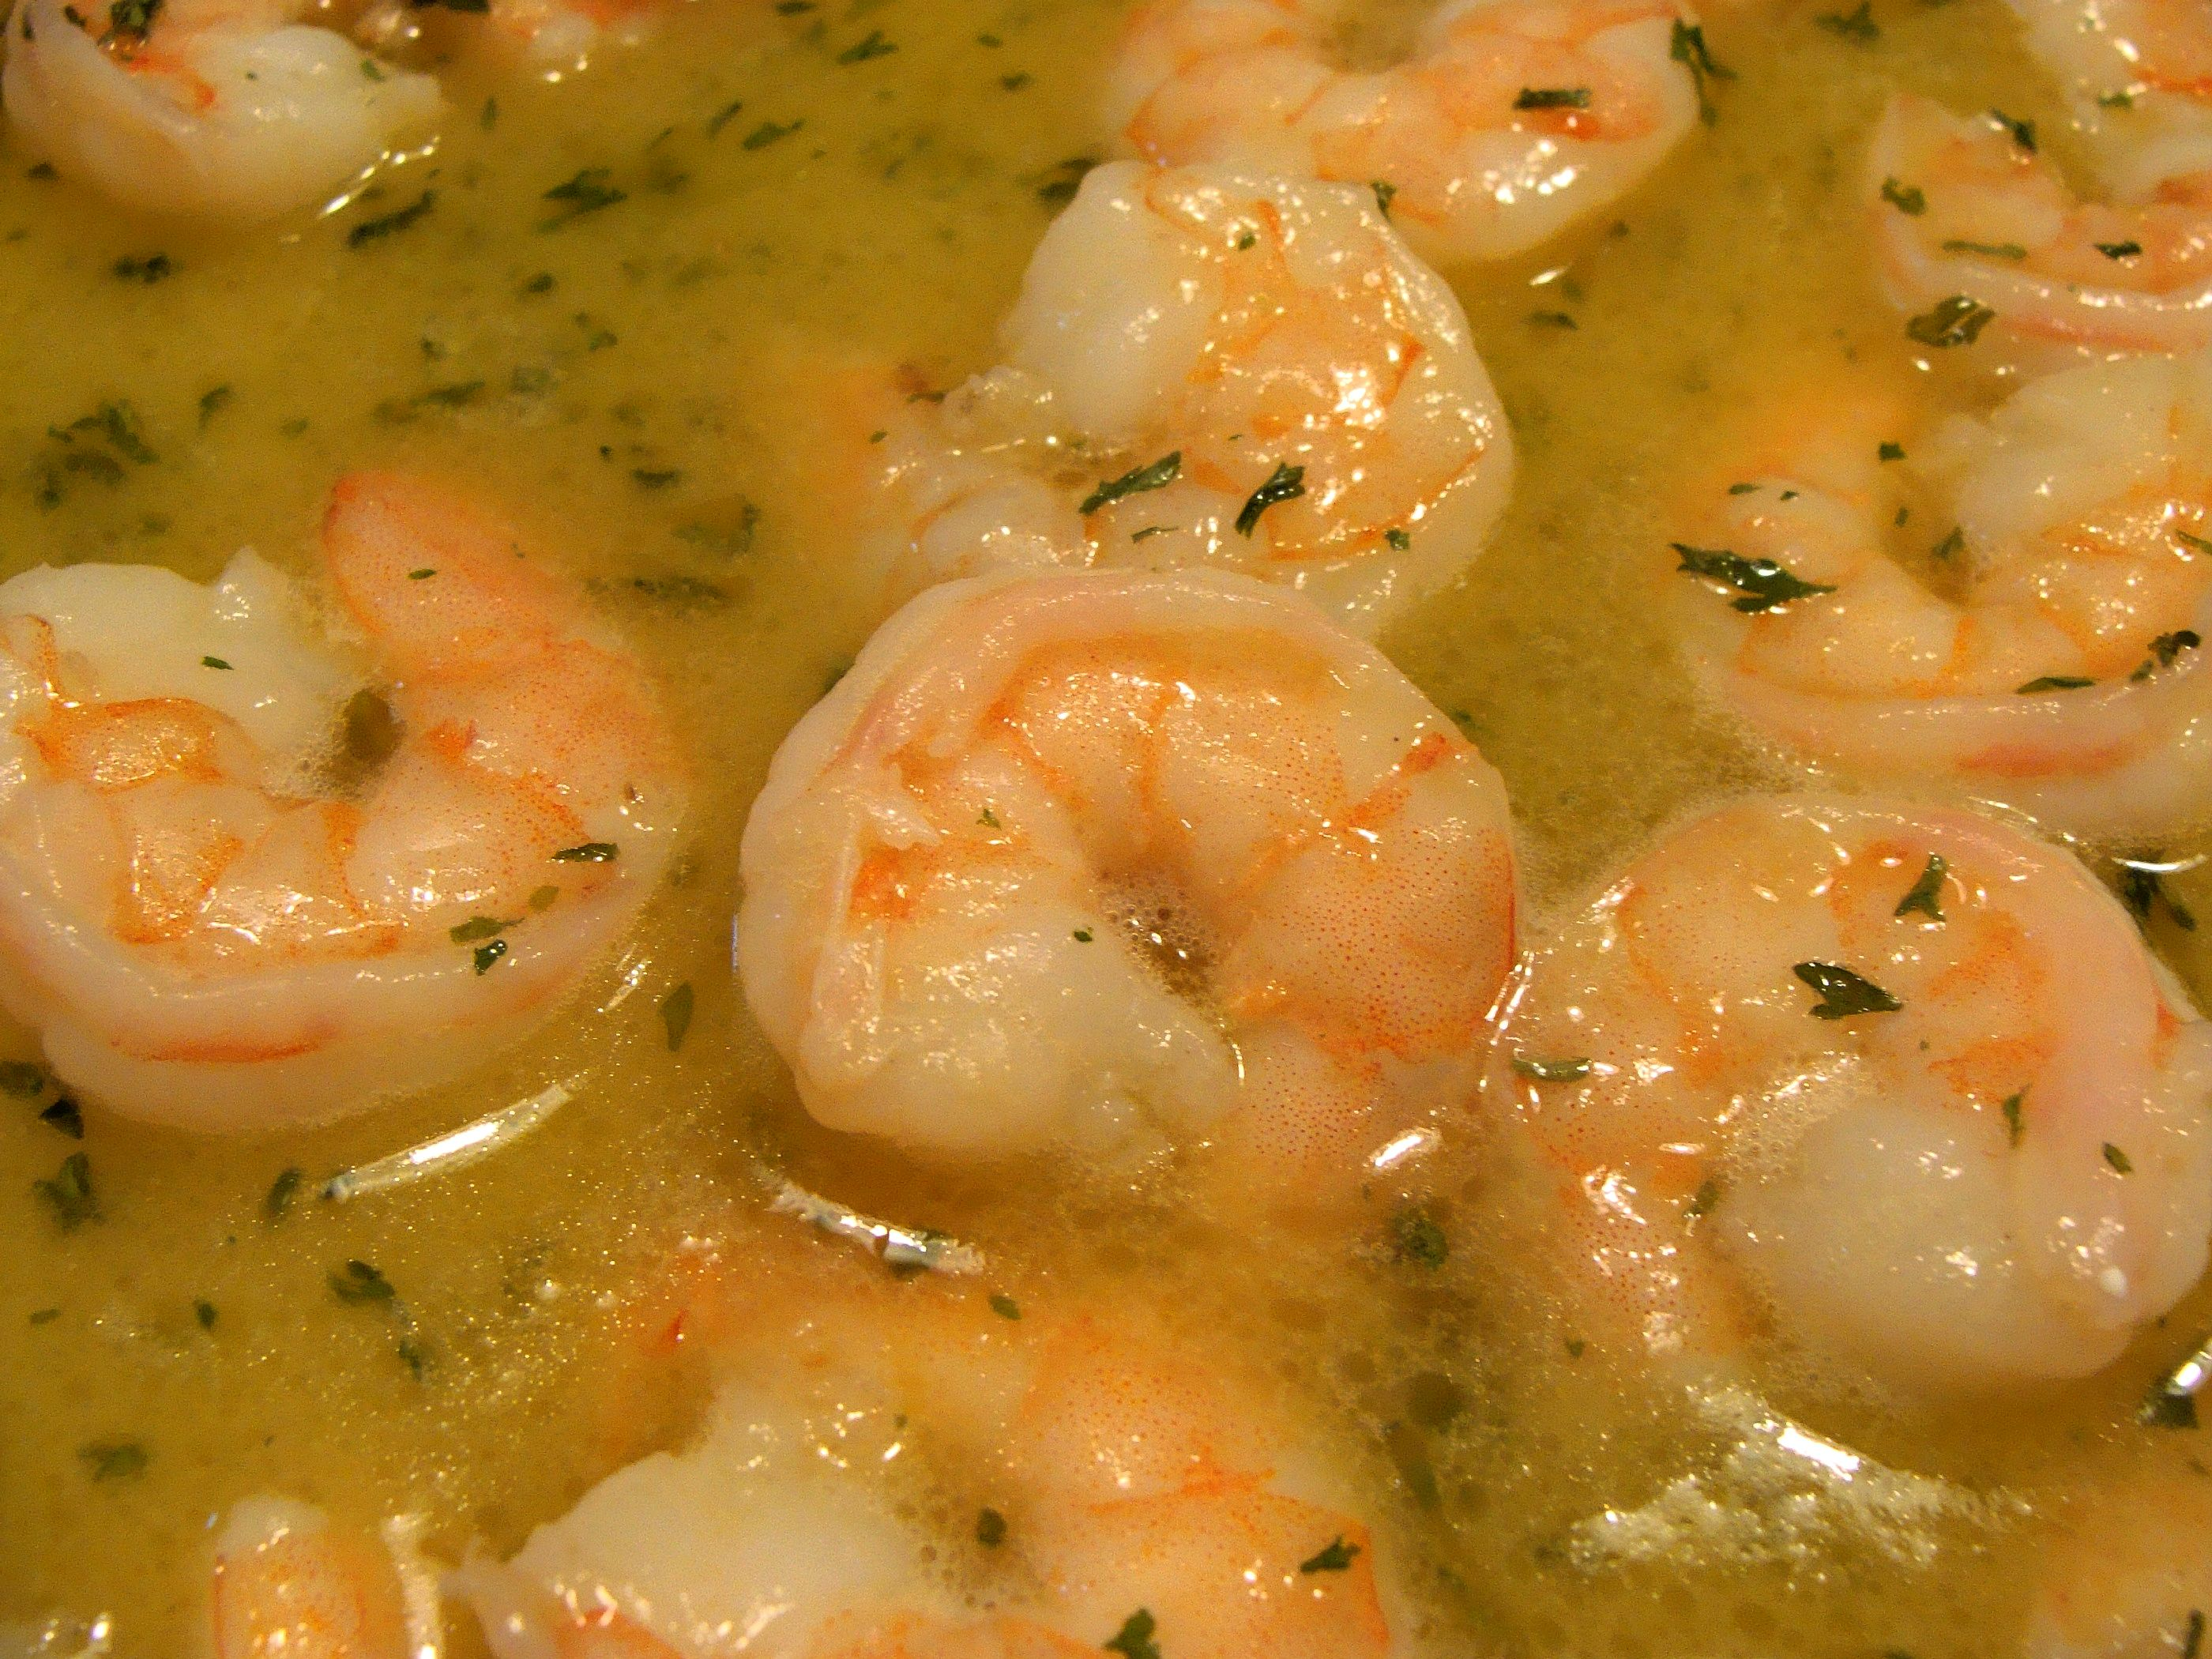 ... shrimp scampi the word scampi means shrimp therefore shrimp scampi is